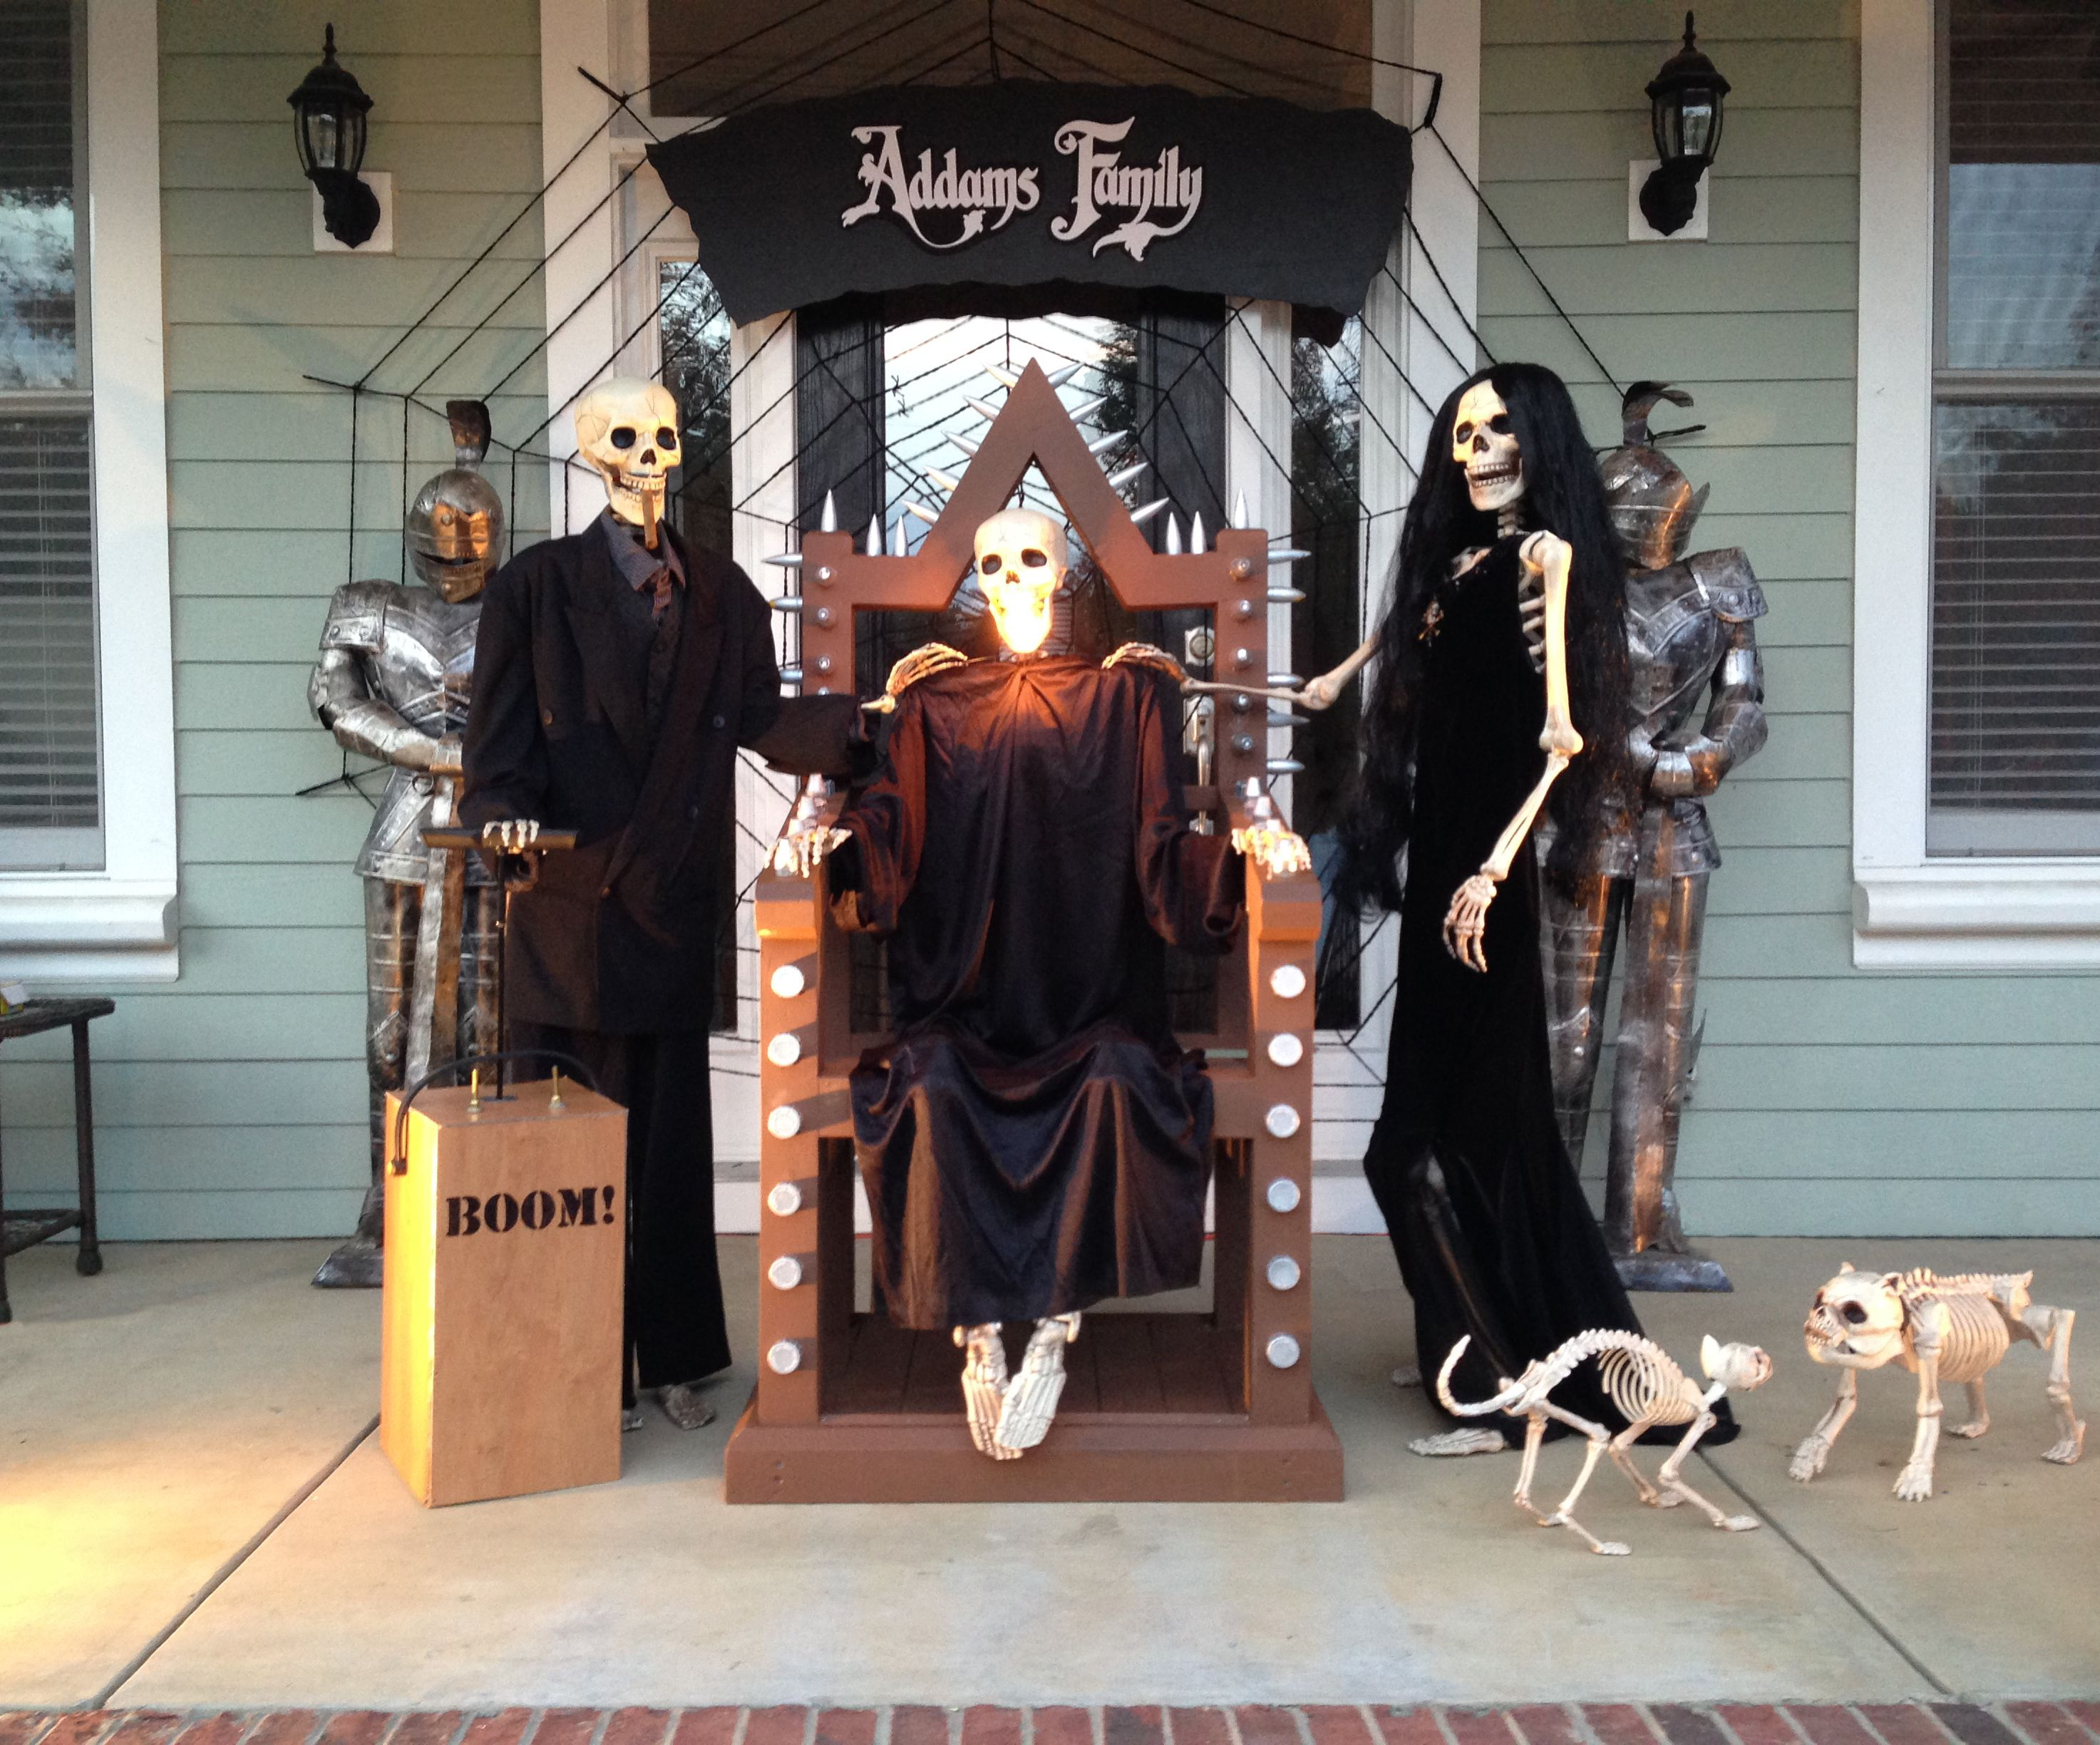 Addams Family Halloween Party.The Addams Family The Baxter Skeletons Help Promote Local High